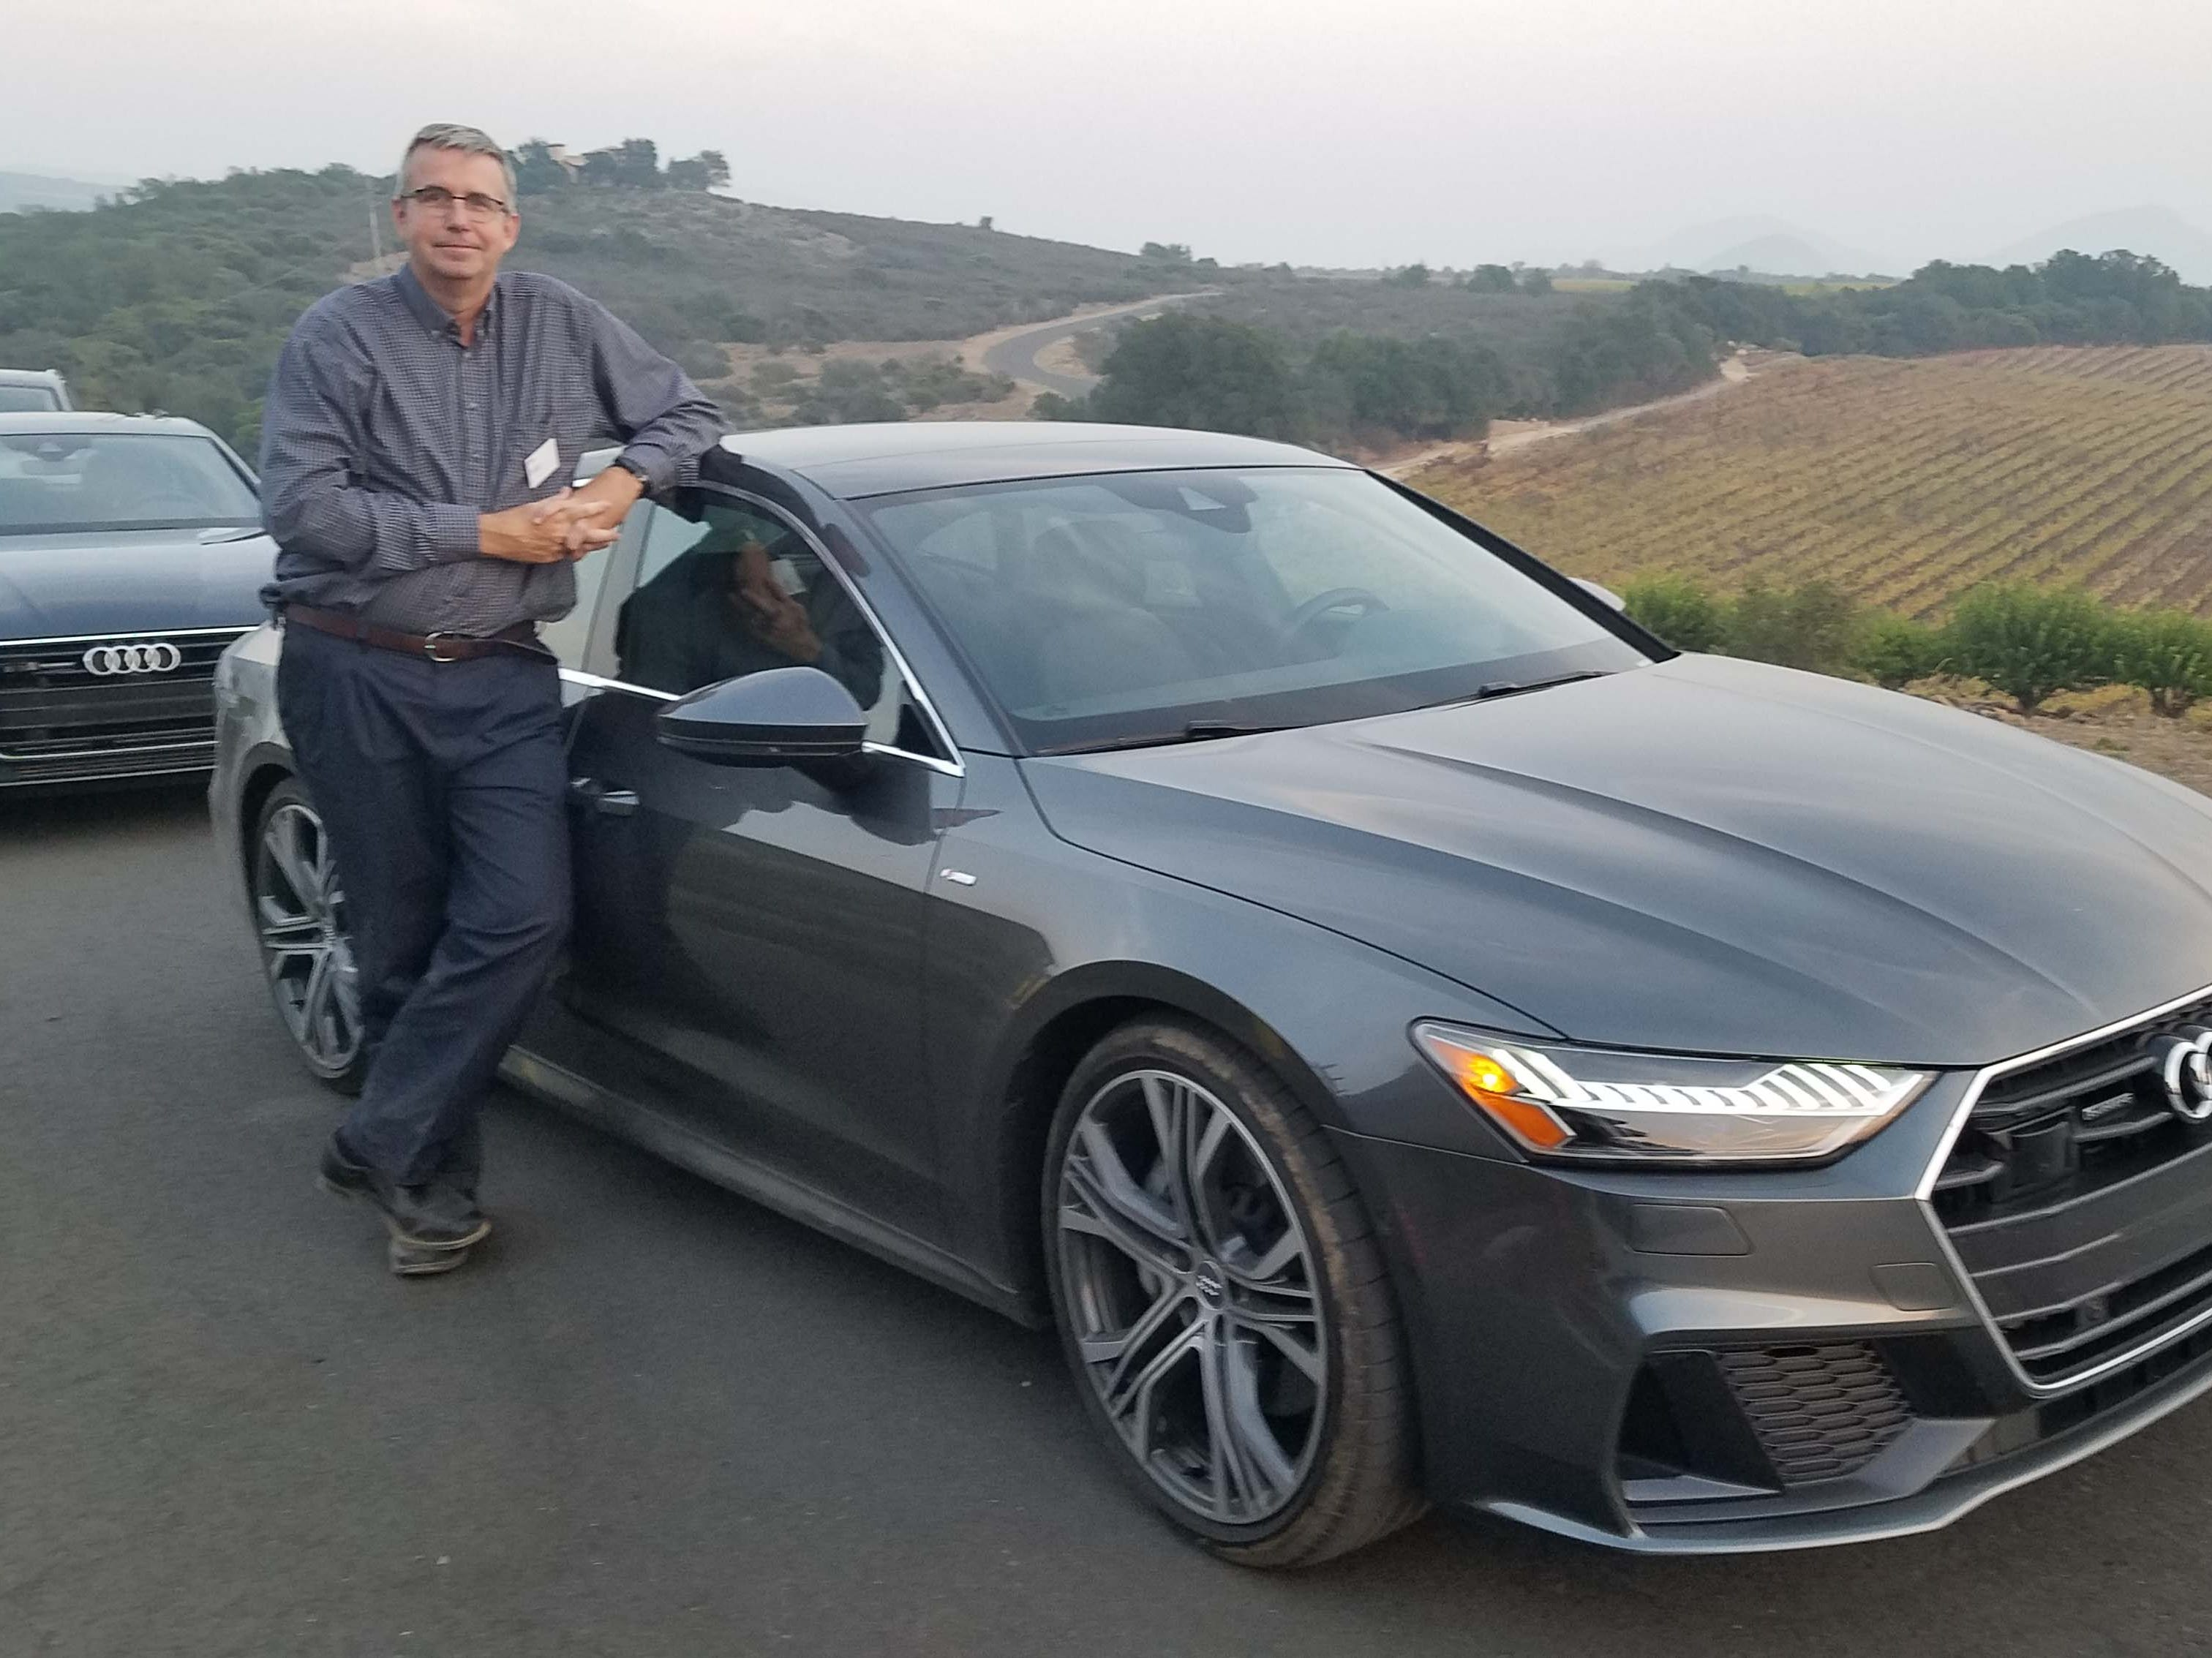 Detroit News auto critic Henry Payne flogged the new, 2019 Audi A7 across the Napa Valley, finding the 4,400-pound, AWD sport sedan to be planted, predictable and powerful.